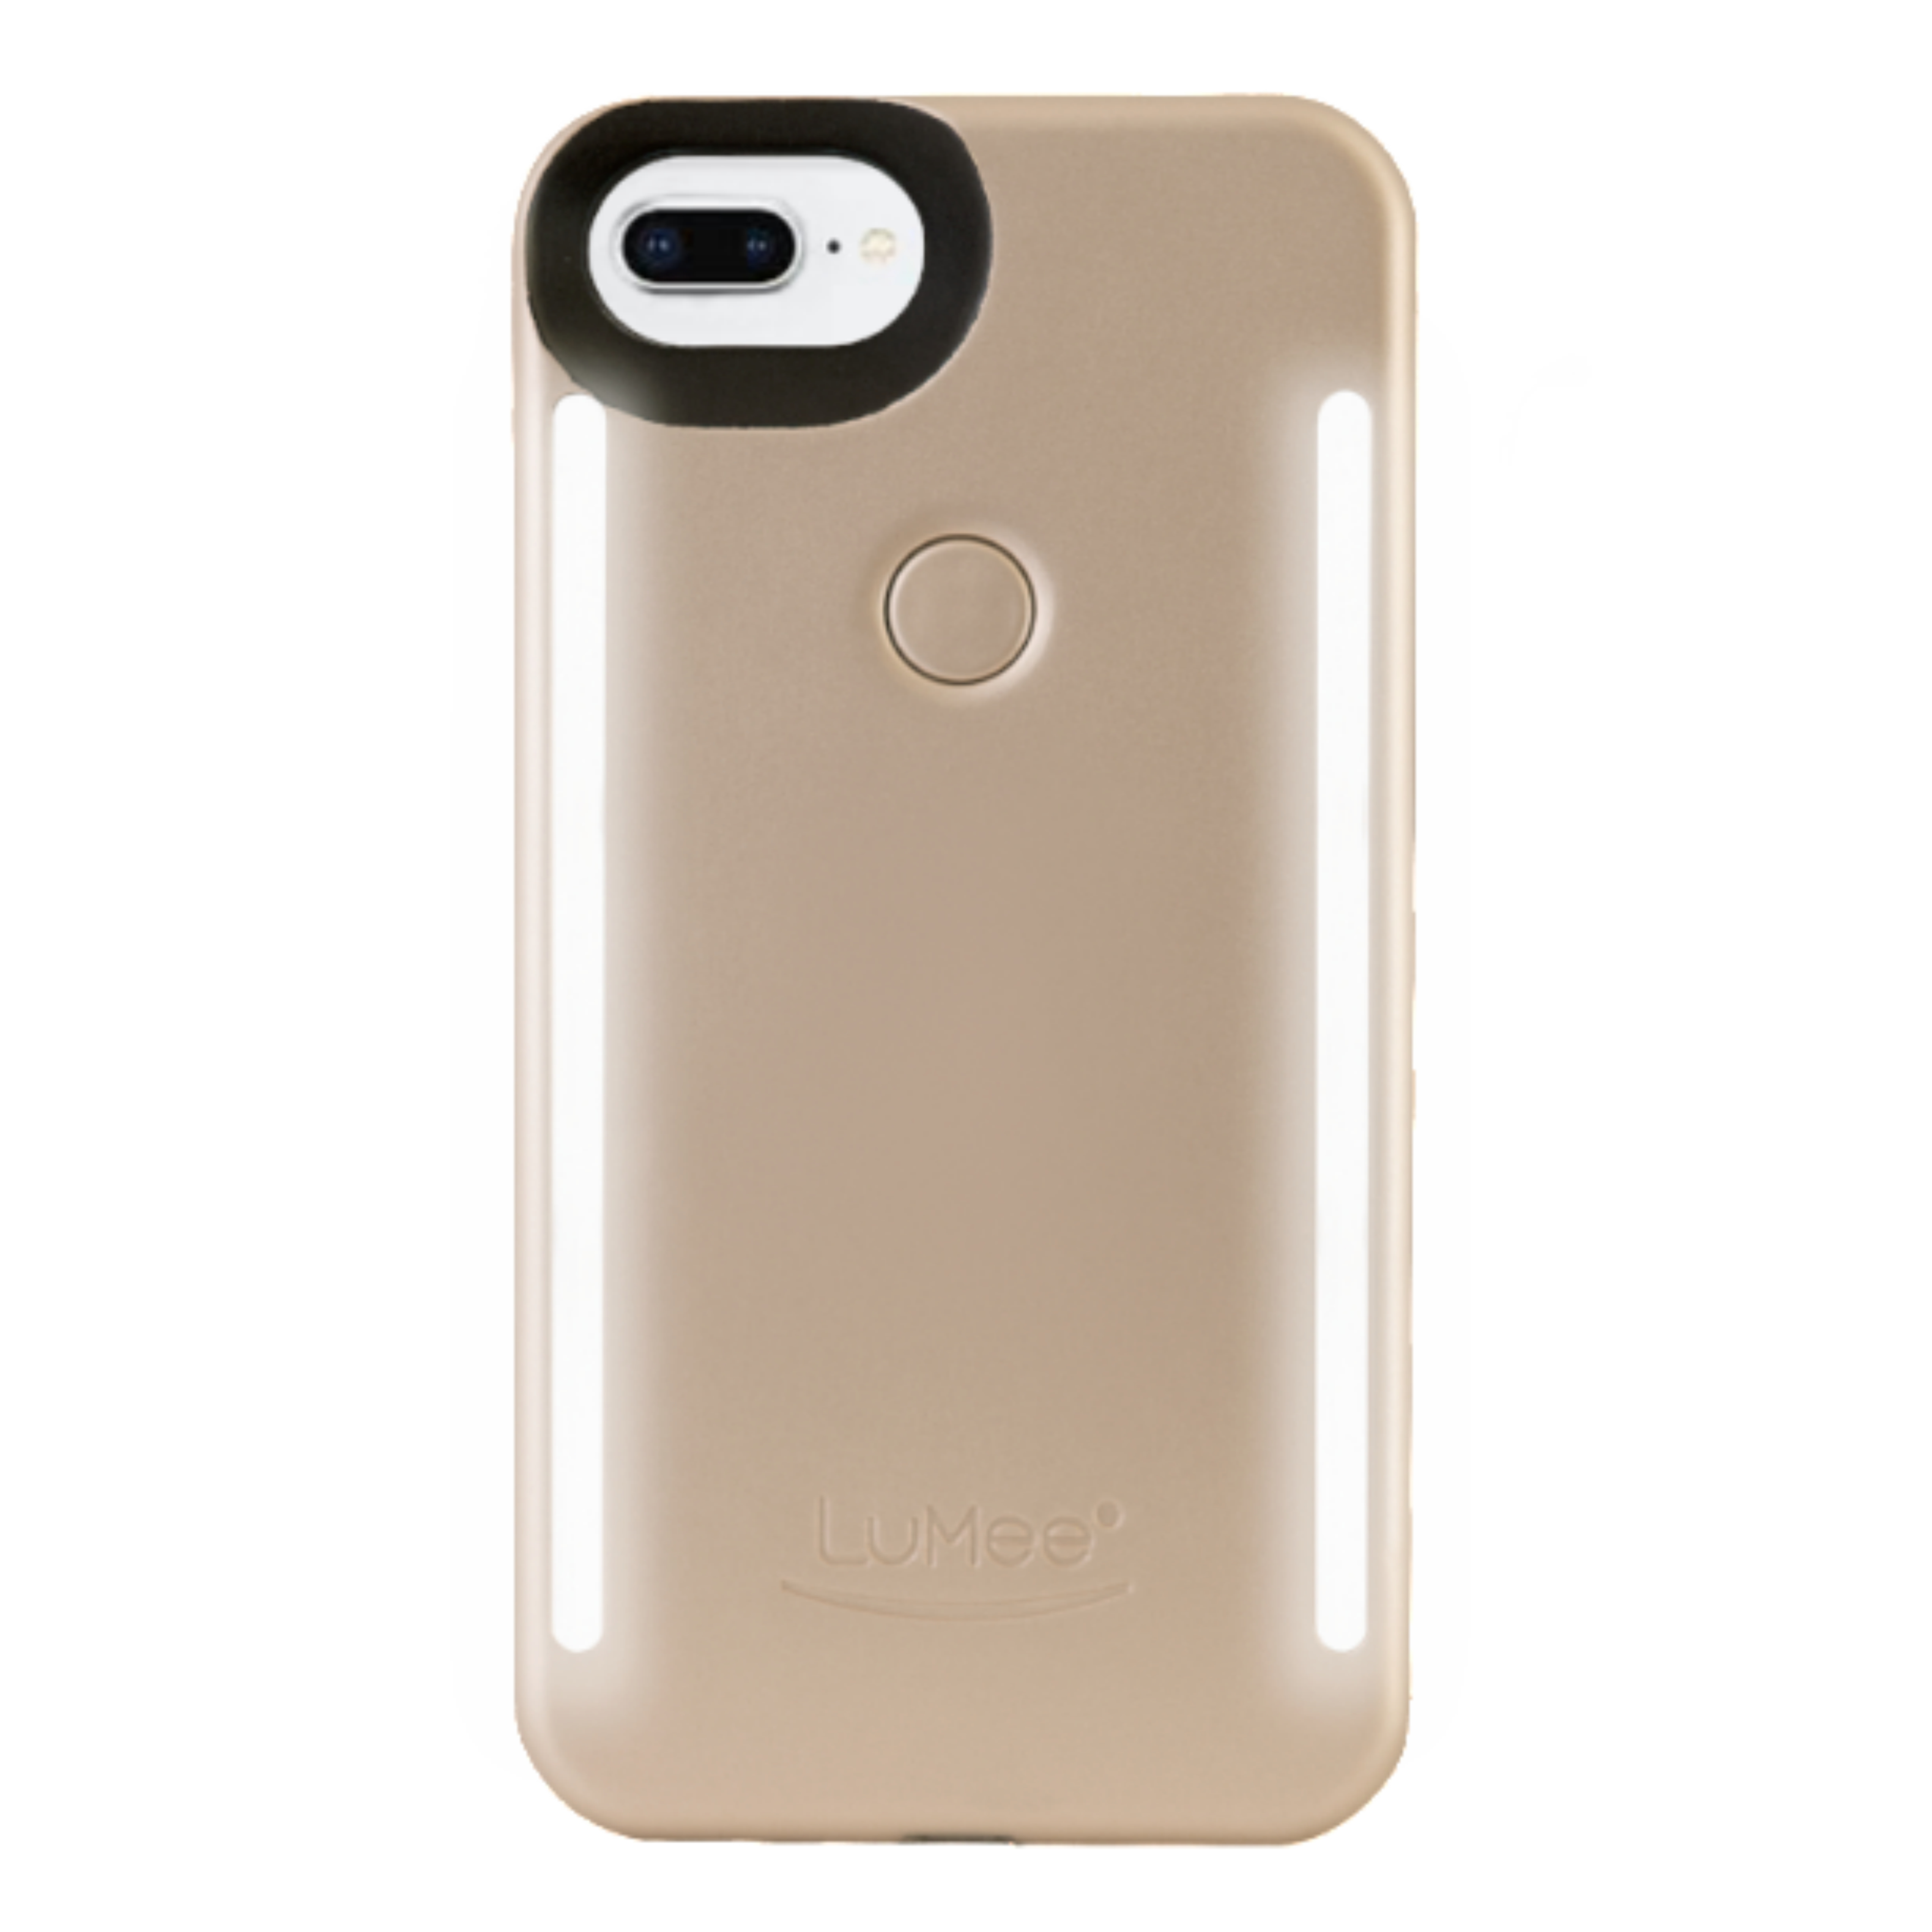 LuMee Duo LED Phone Selfie Case For iPhone 6/6S/7/8 Plus|Soft-Slim-Sleek|Matte Gold